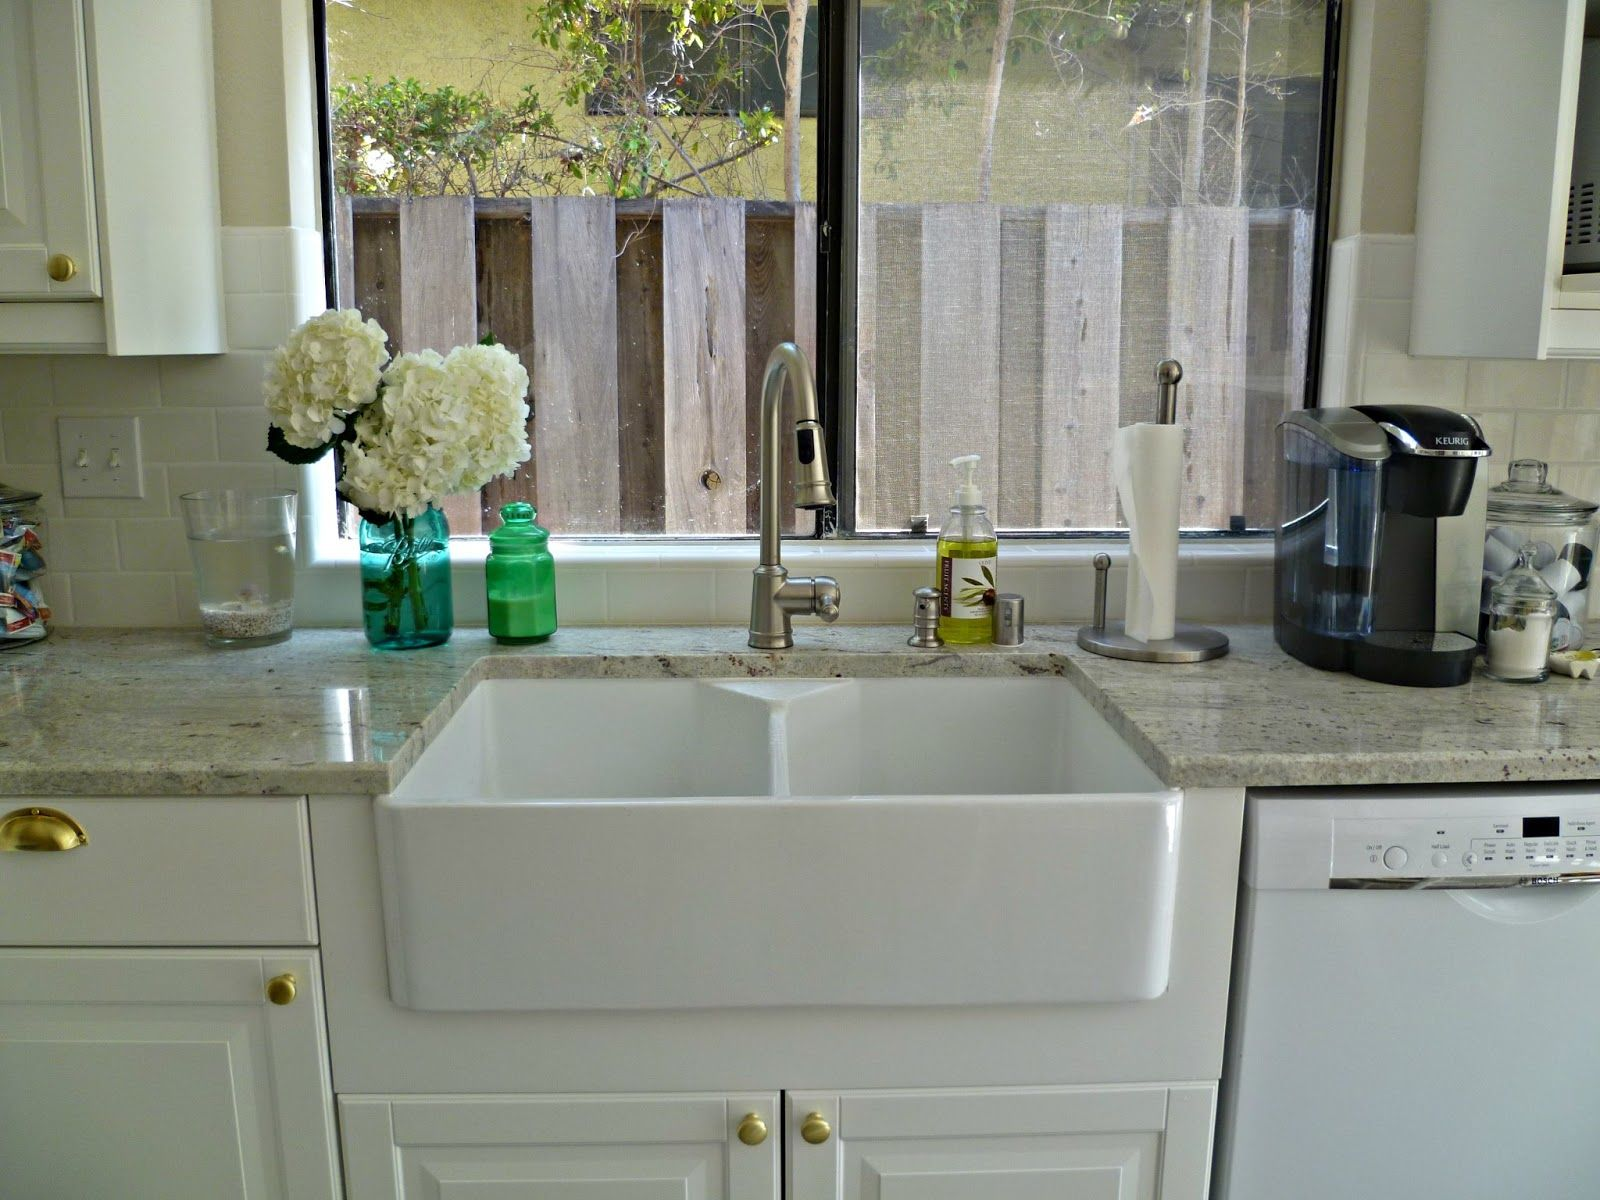 farm sinks for kitchens Kitchen cabinets farmhouse sinks